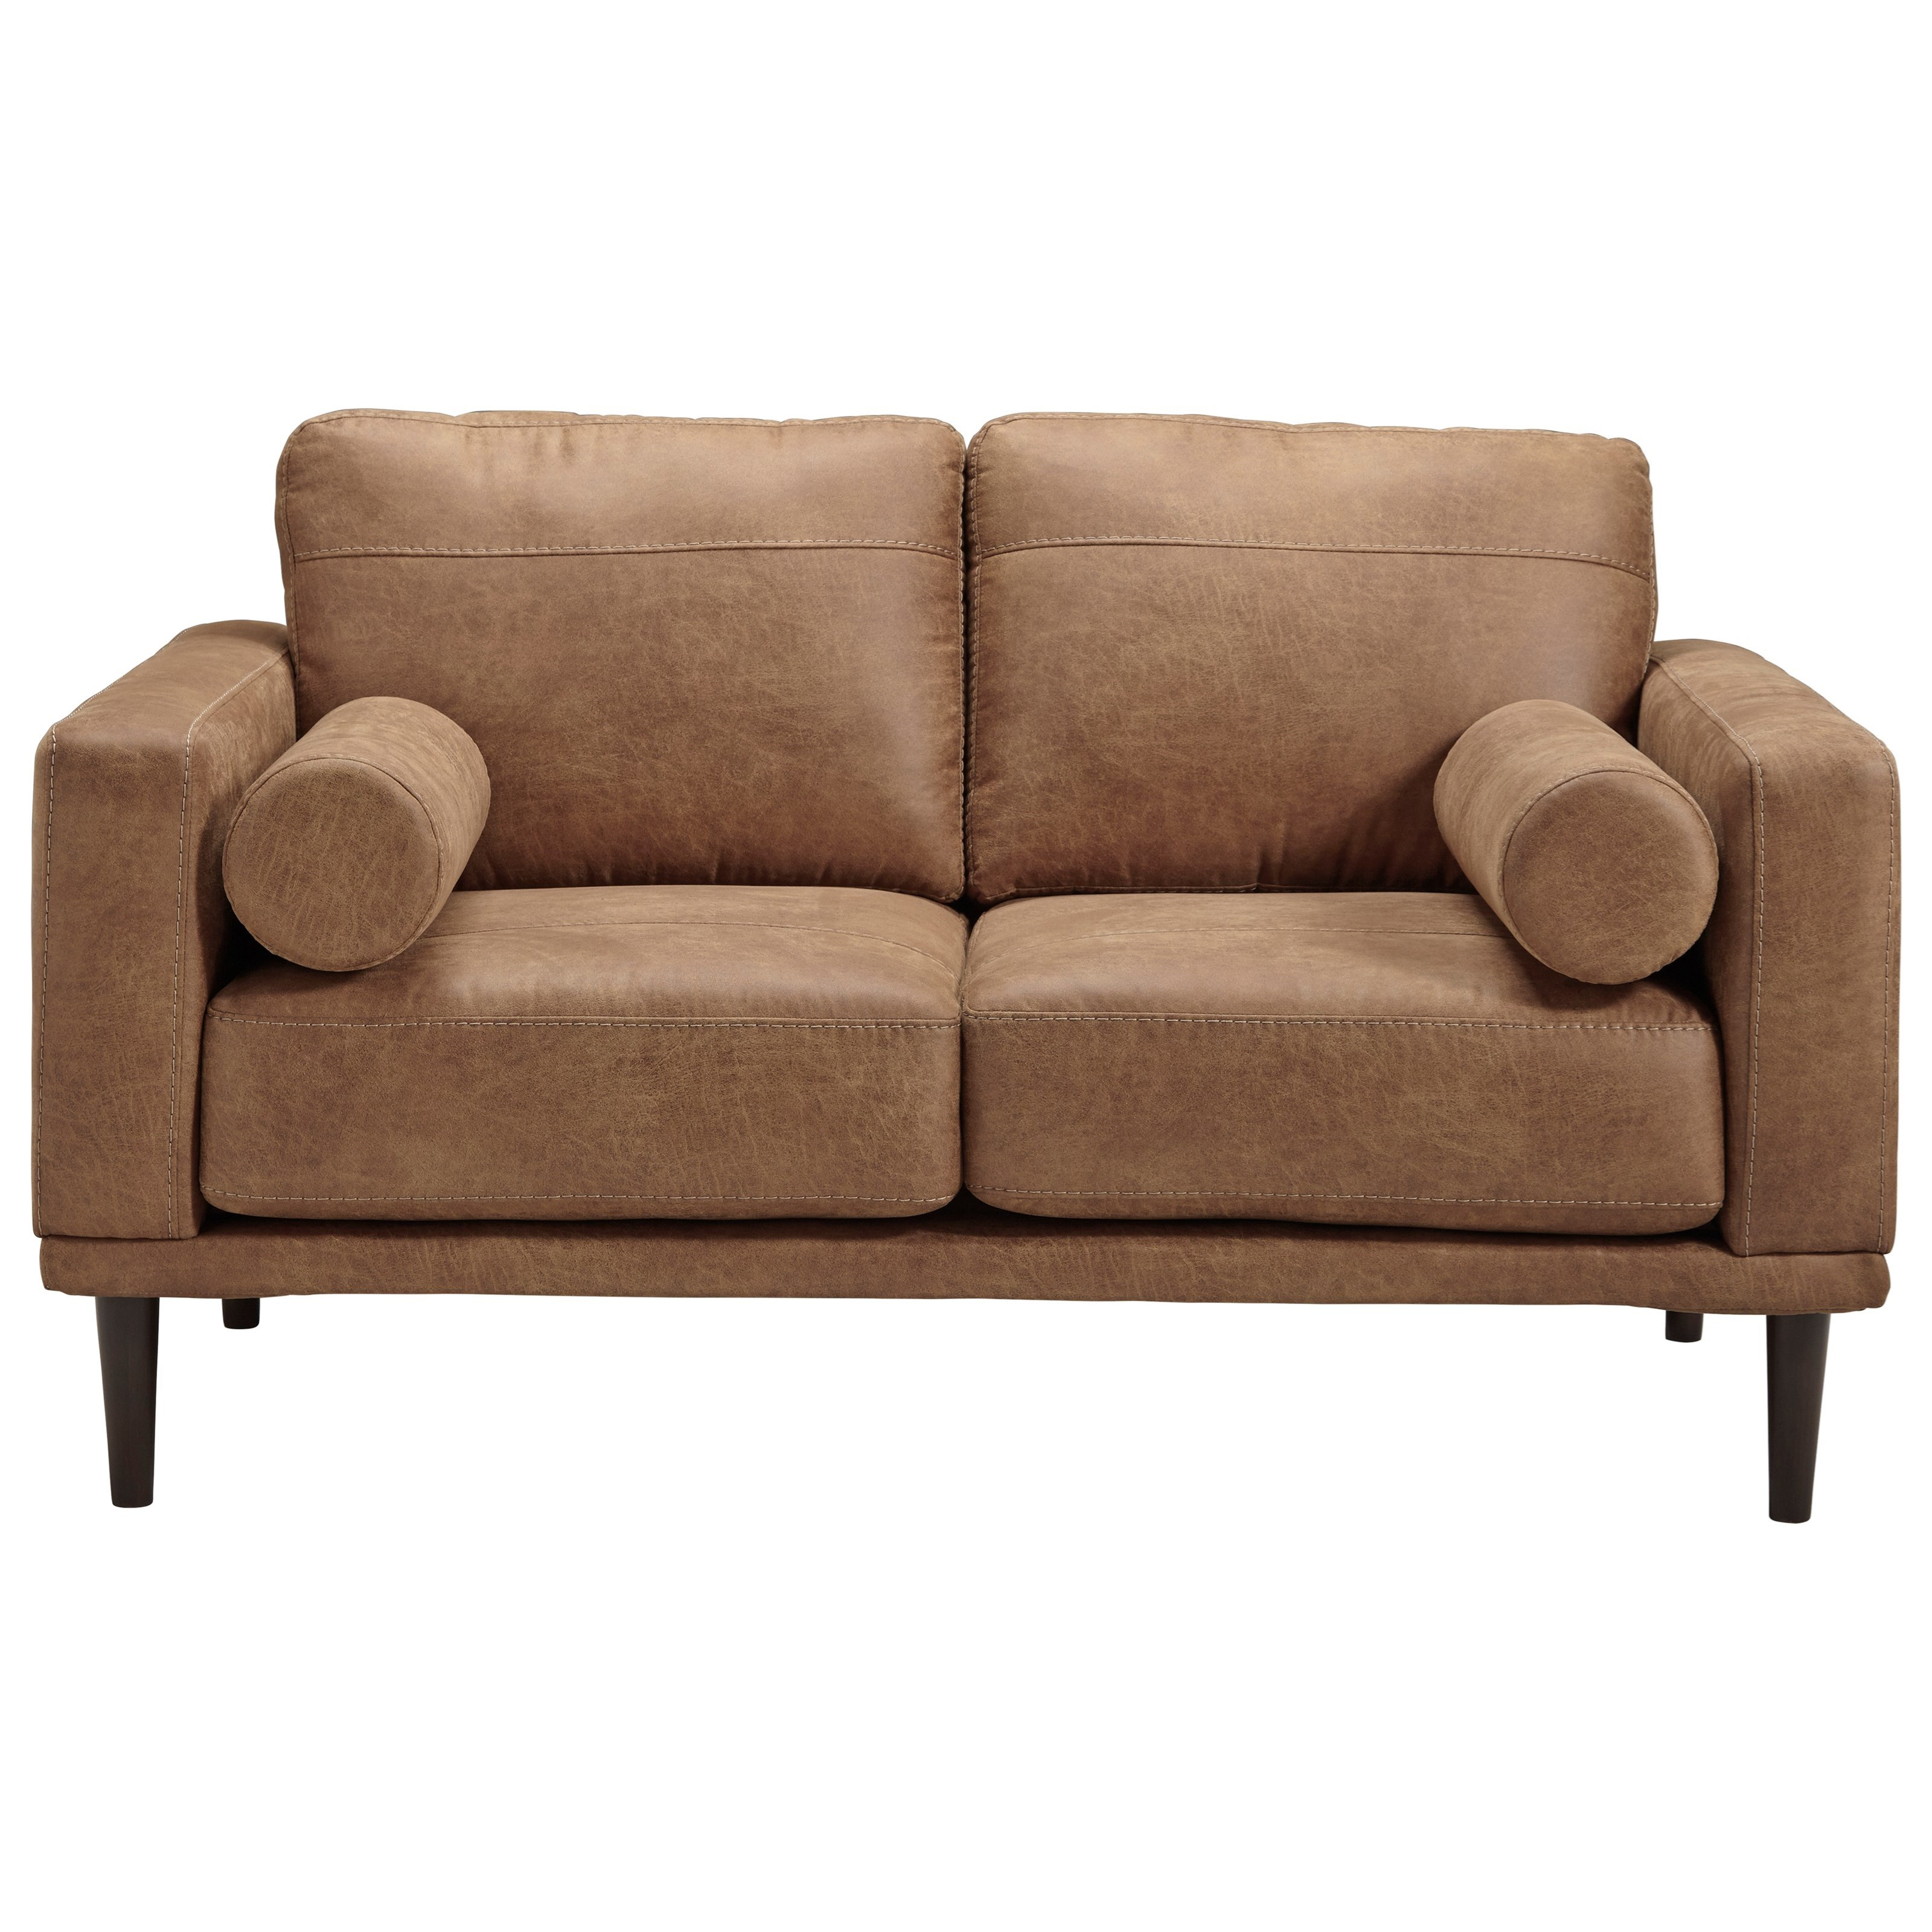 Arroyo RTA Loveseat by Signature Design at Fisher Home Furnishings